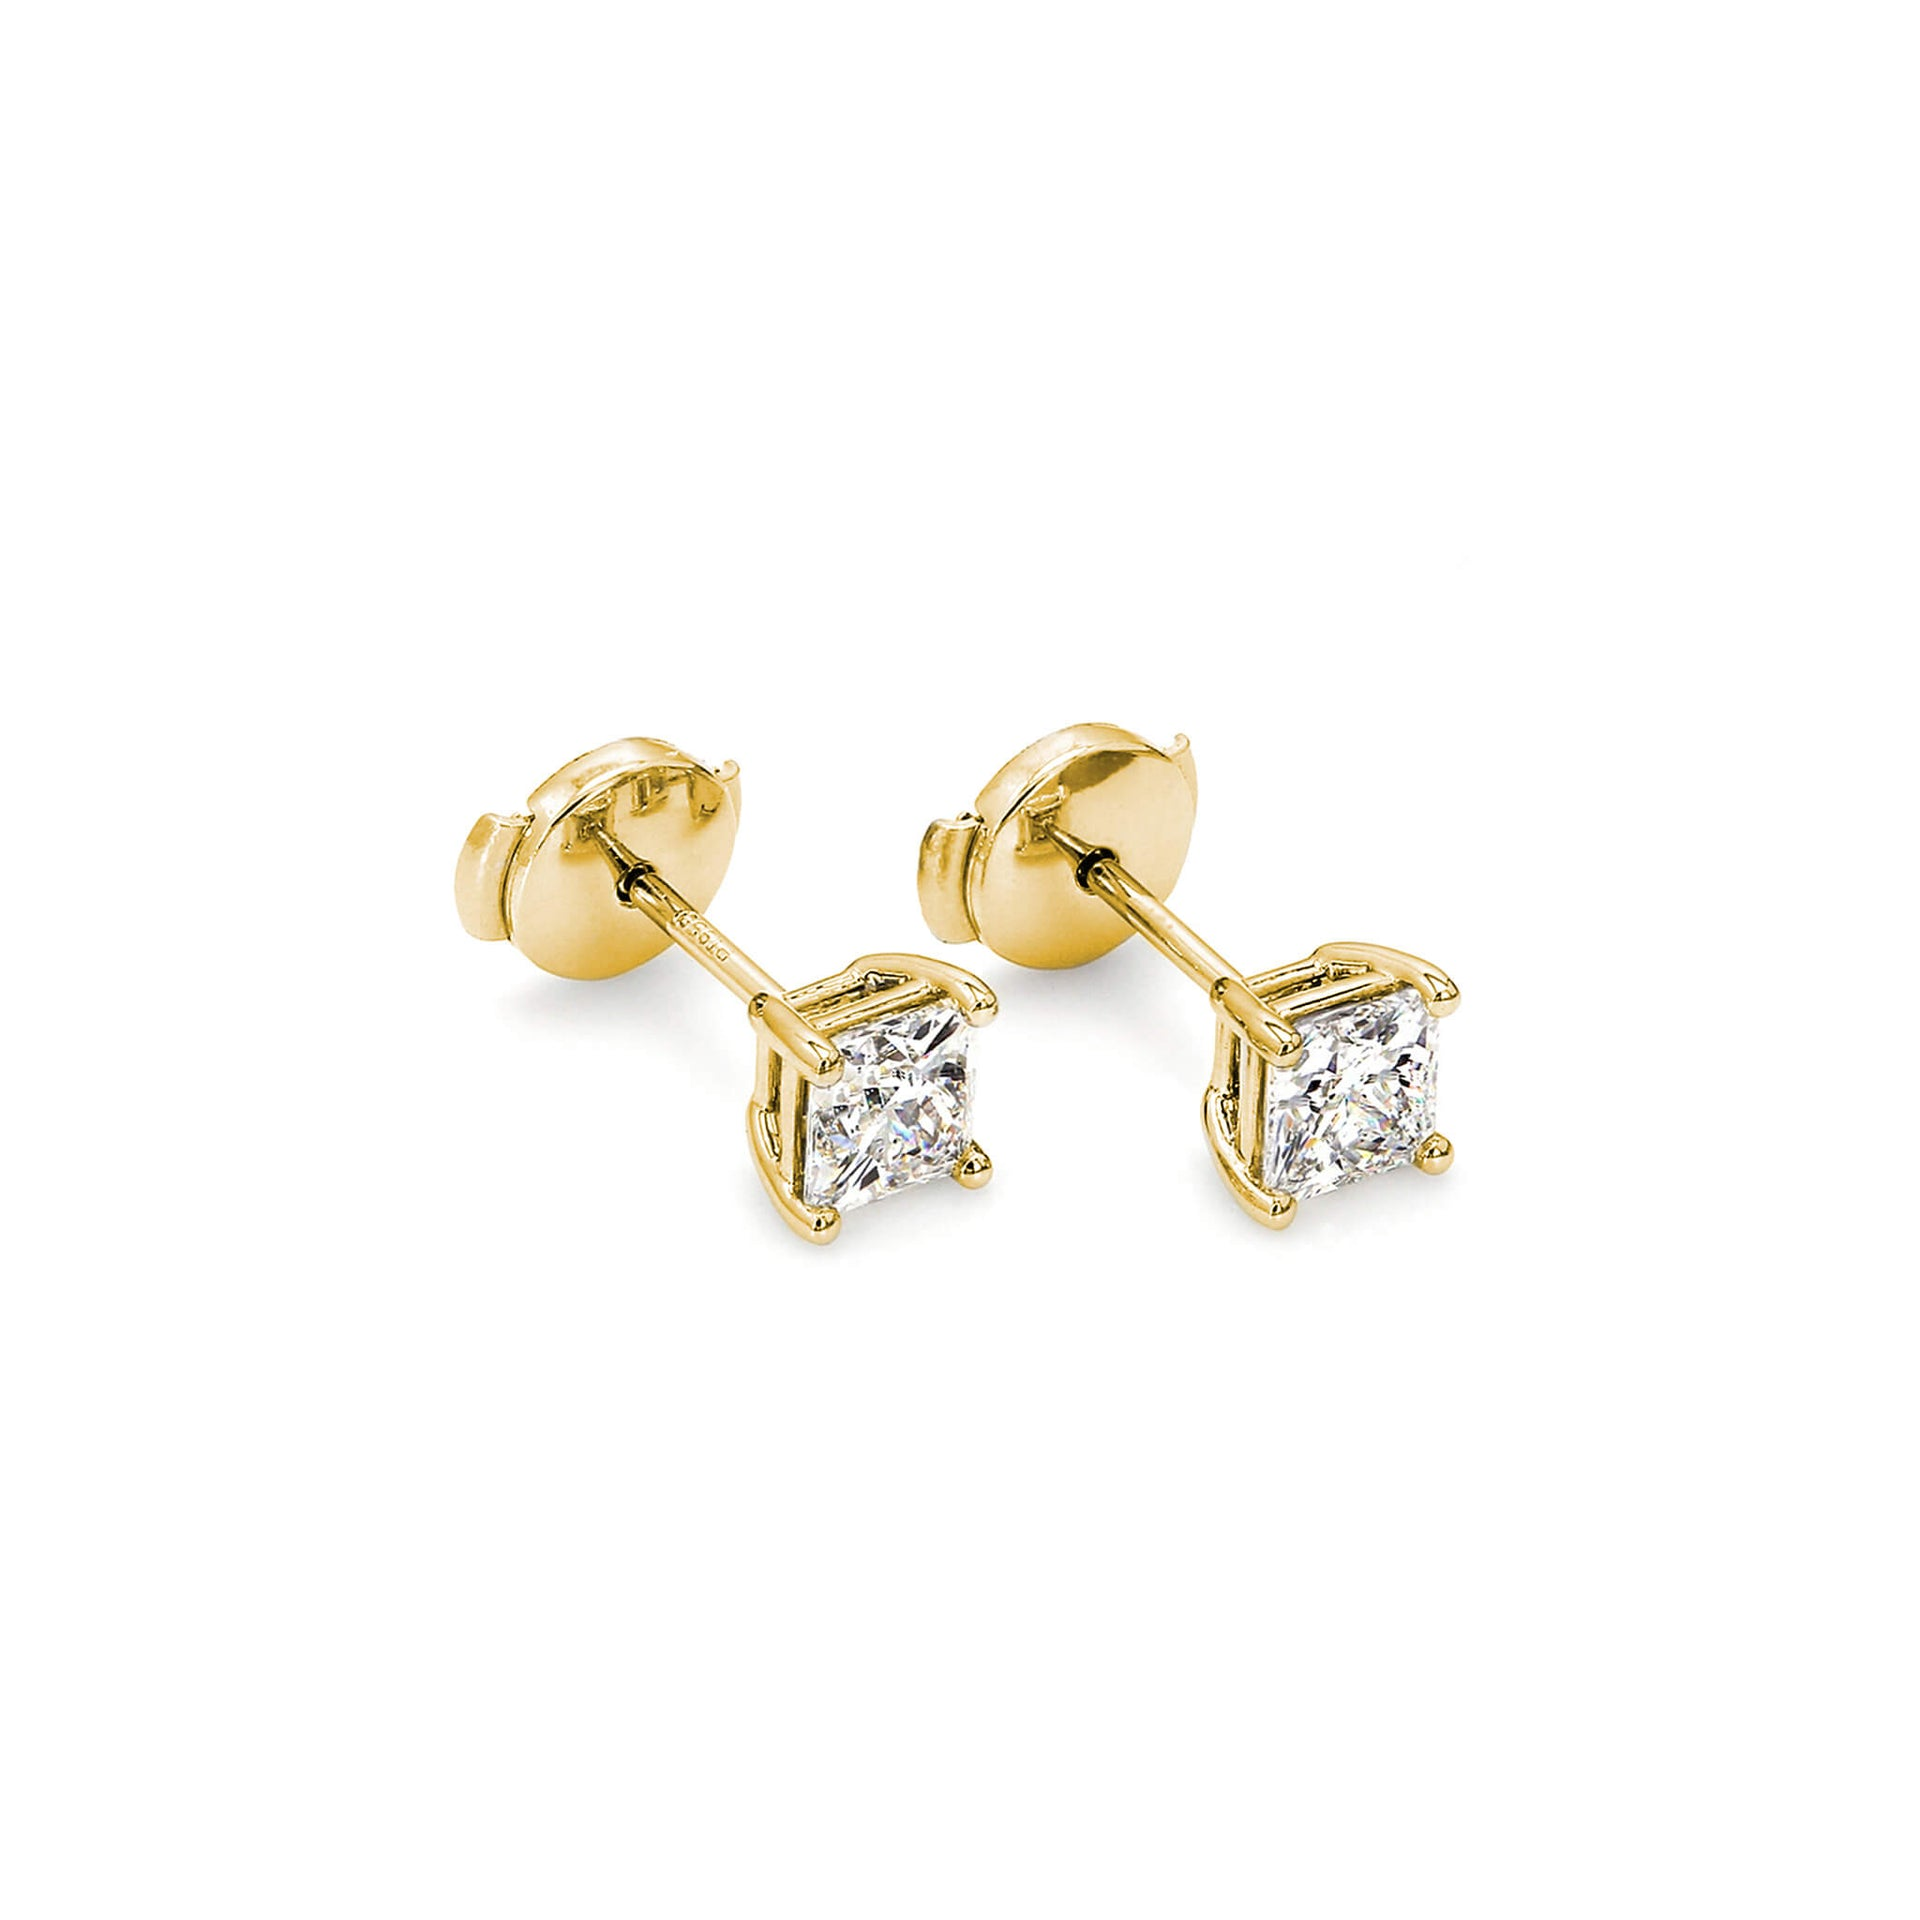 My Girl Classic Solitaire Diamond Stud Earrings in 18K Yellow Gold 3D View